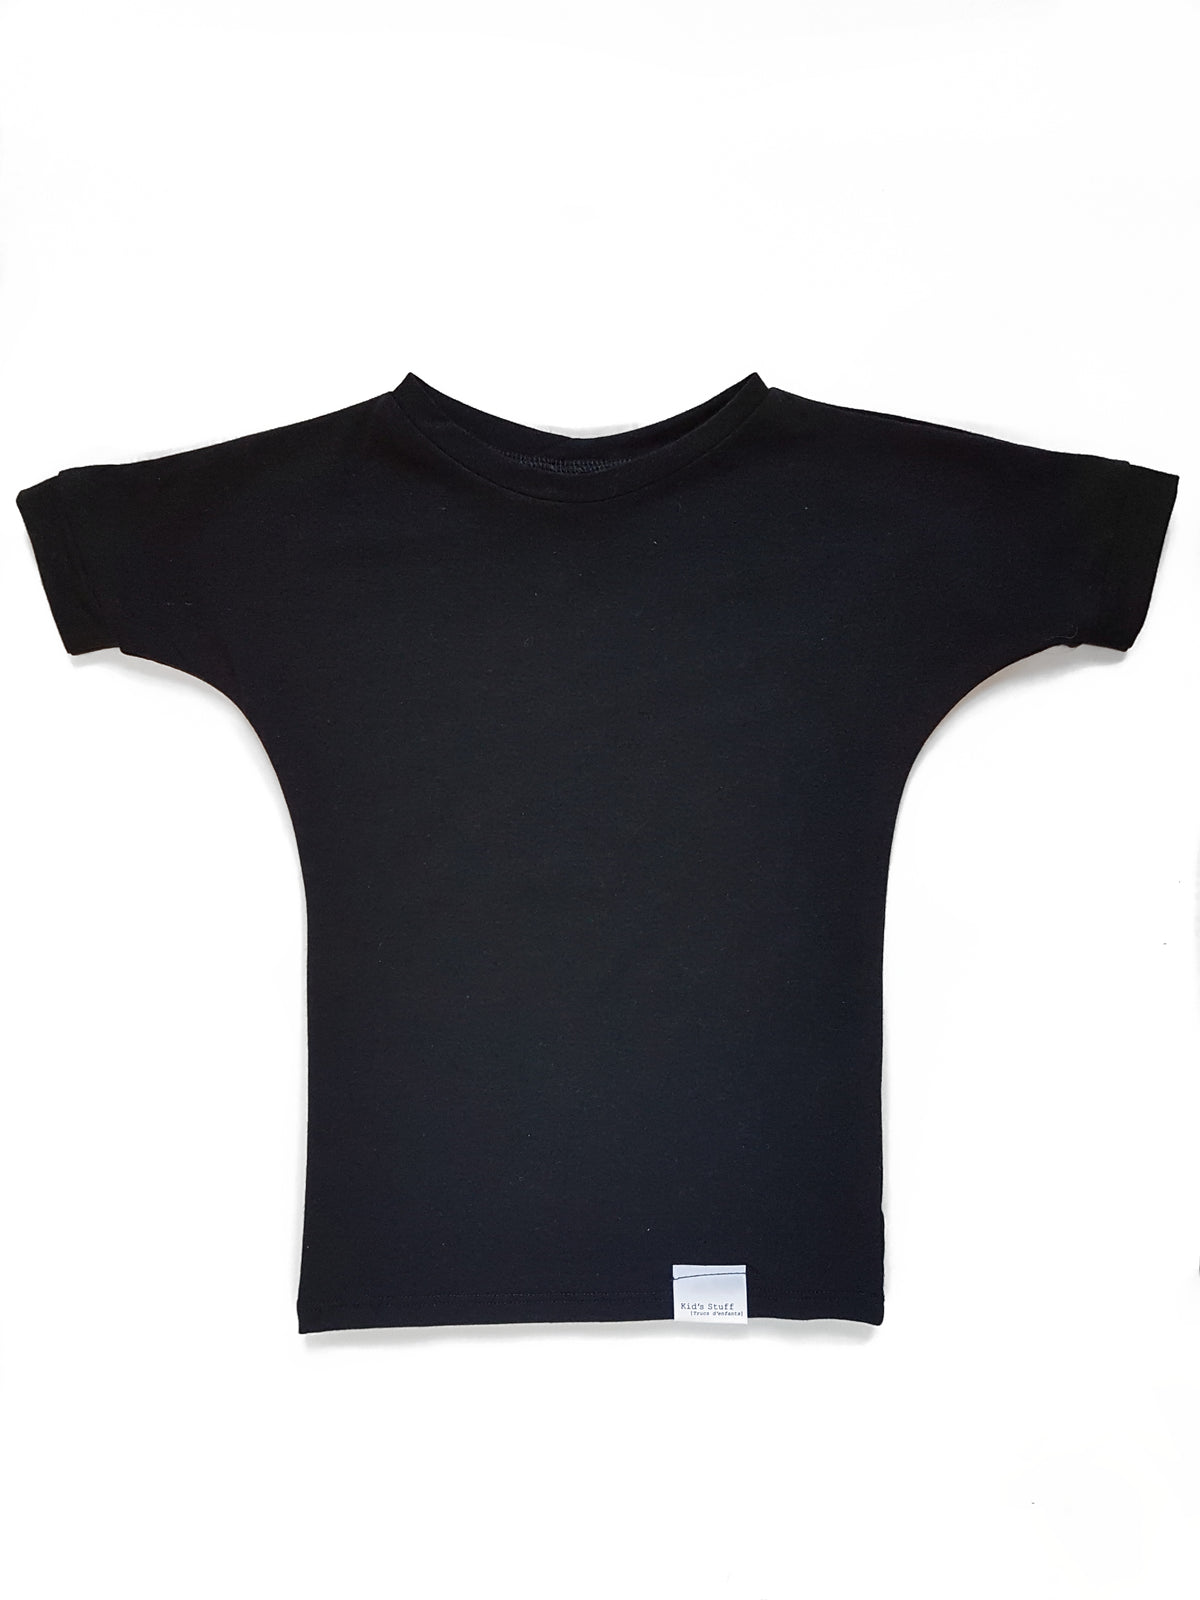 Grow with me black t-shirt made with organic cotton. It can be worn as a long top, or dress and as your kid grows taller it will start to fit more like a regular top.